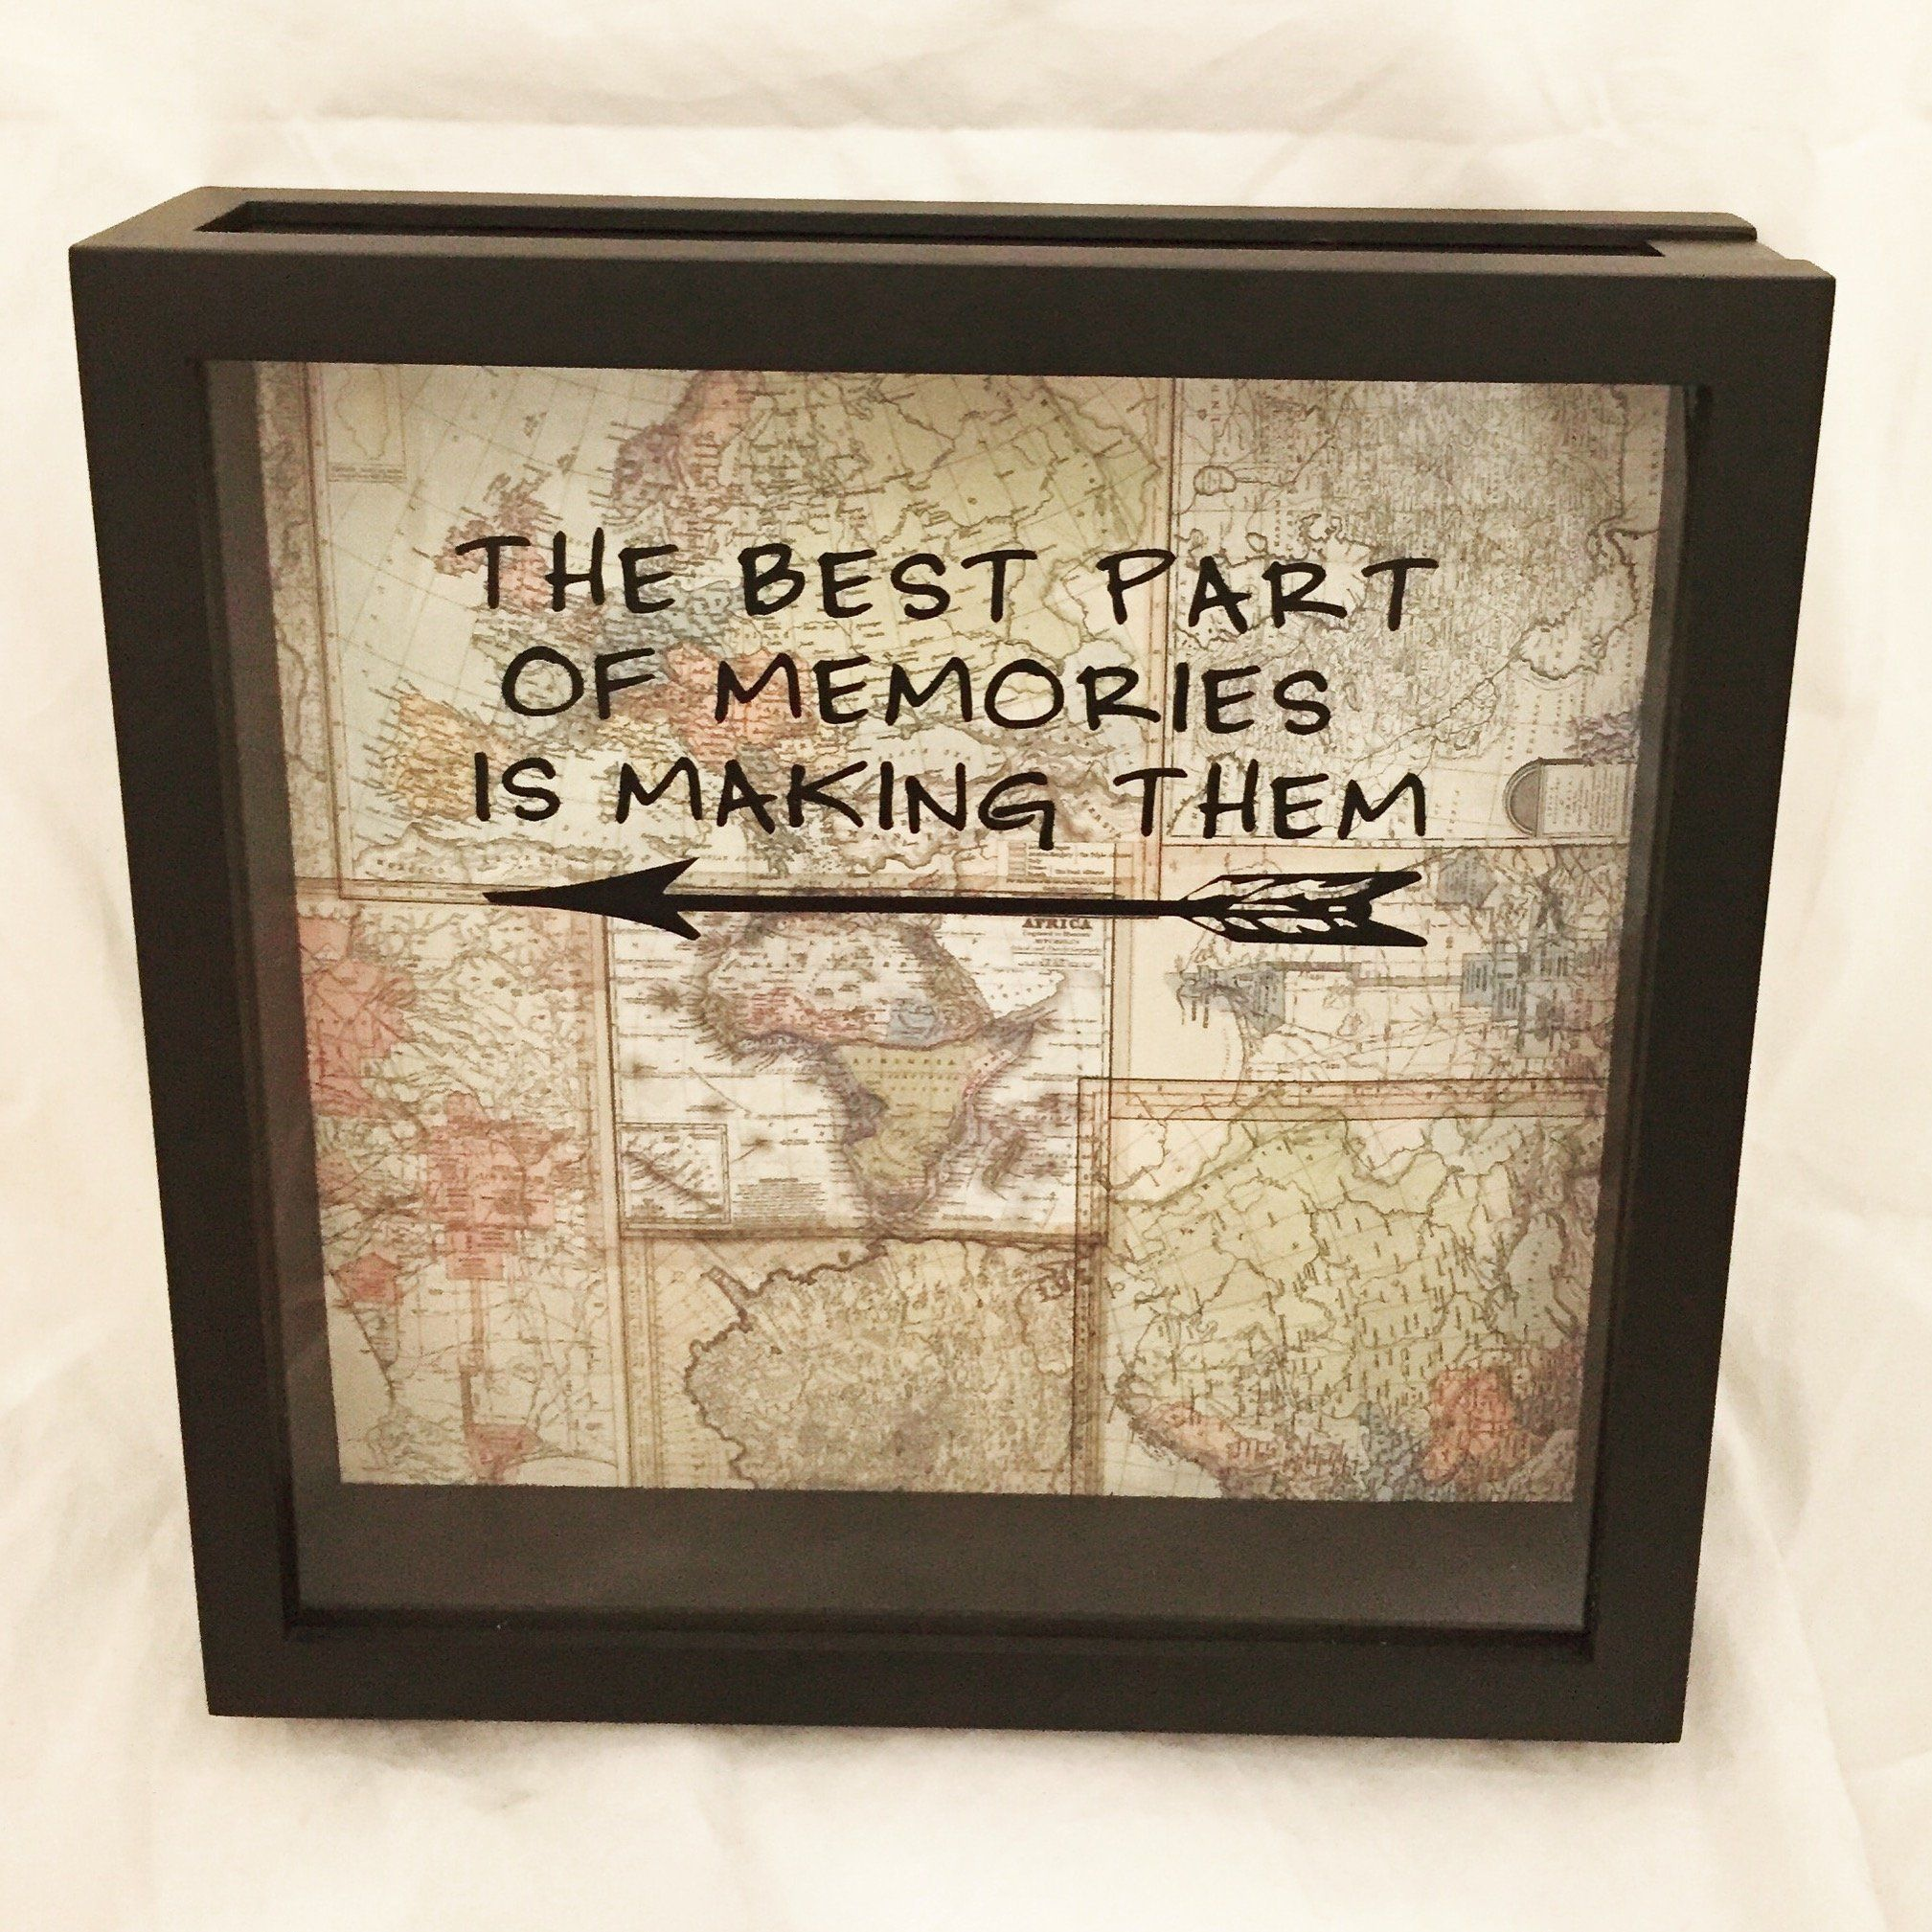 20 shadow box ideas cute and creative displaying meaningful memories gift ideas ticket. Black Bedroom Furniture Sets. Home Design Ideas